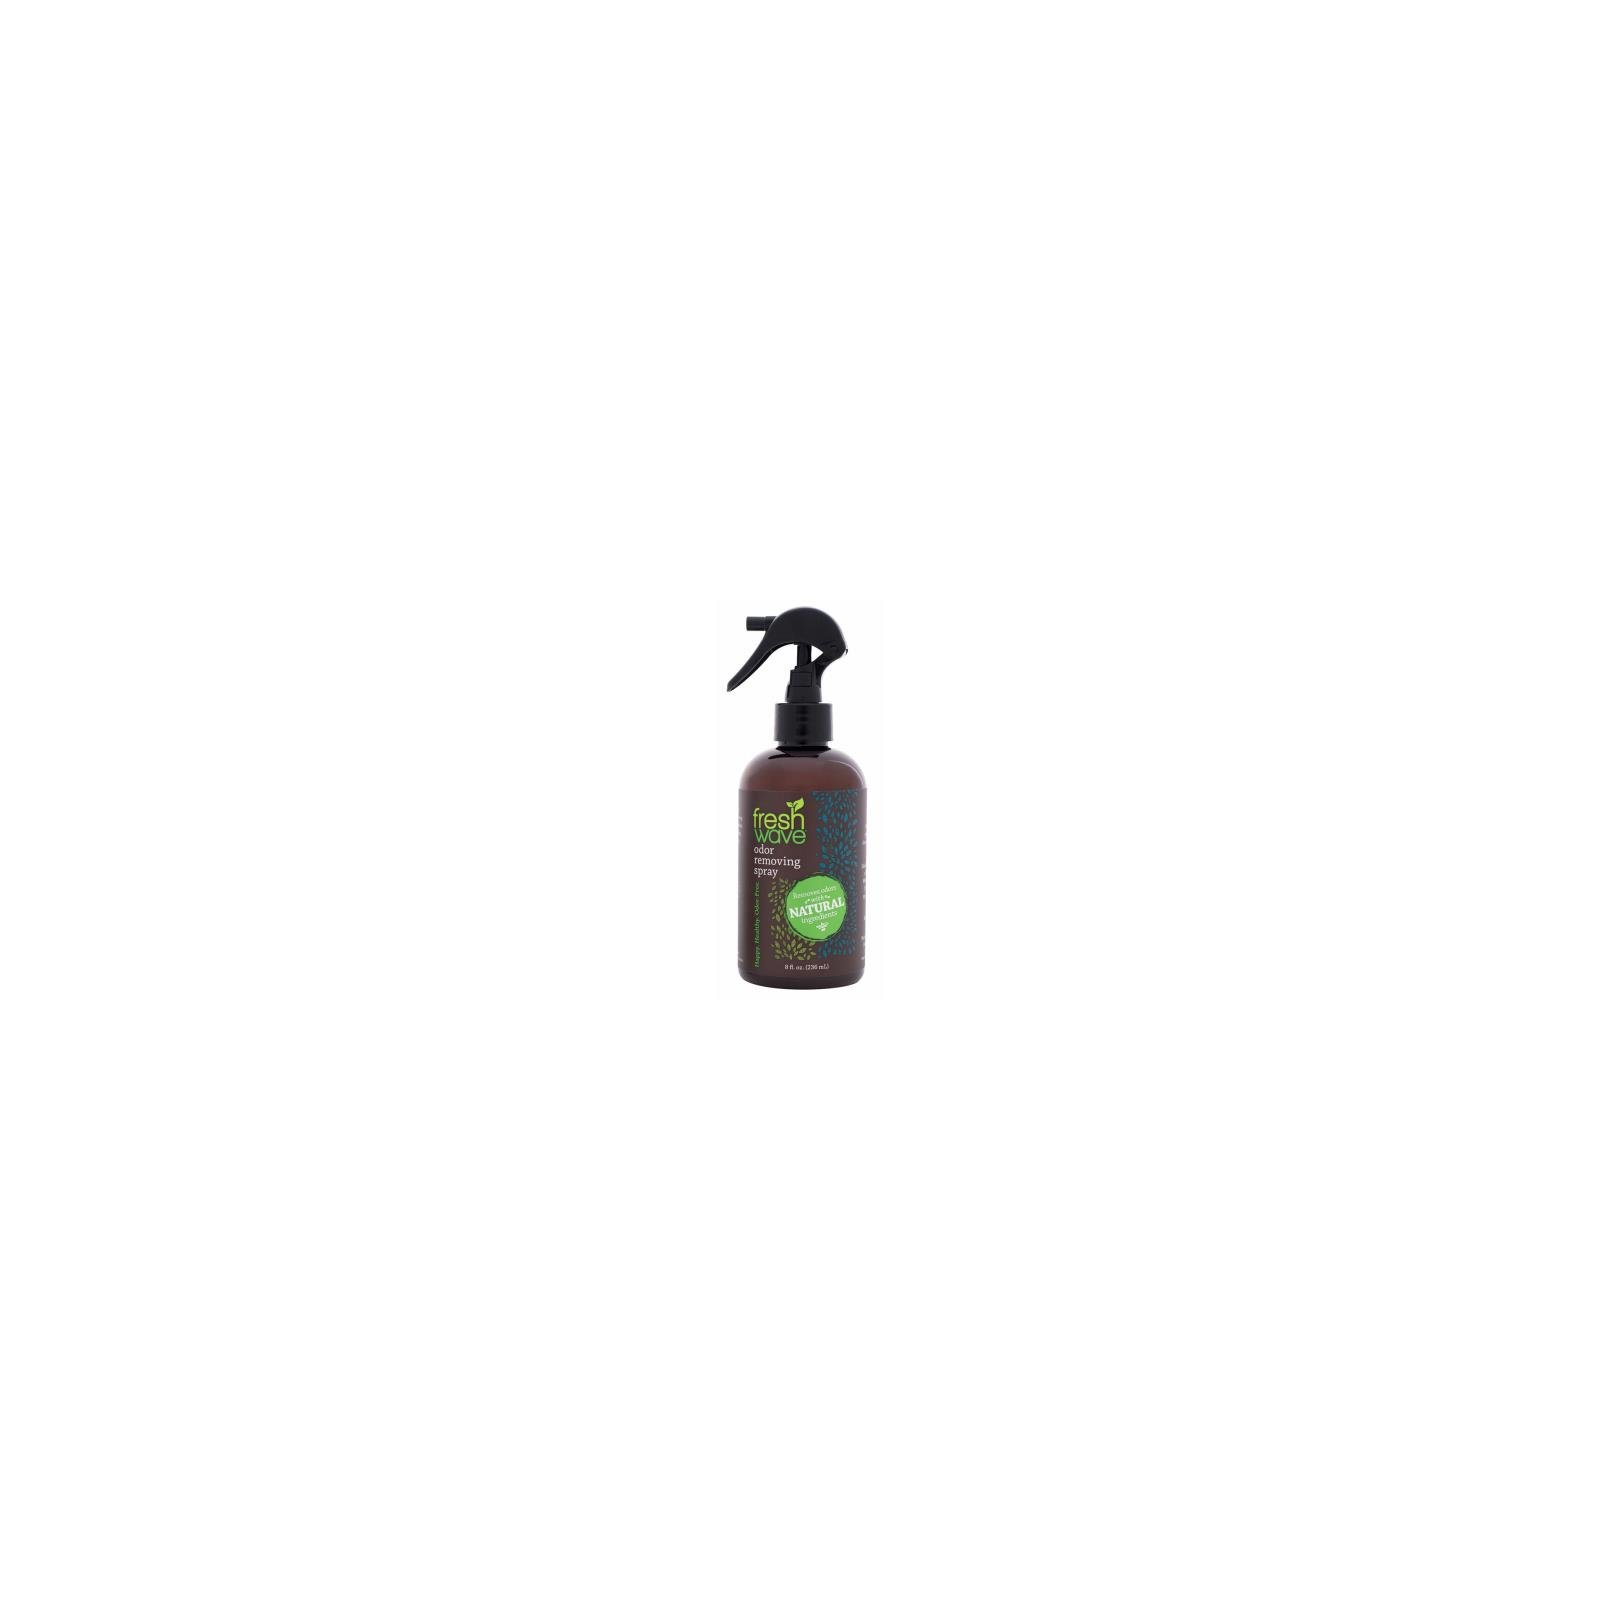 Fresh Wave/Omi Industries 032 Fresh Wave 8-oz. Home Spray - Quantity 12